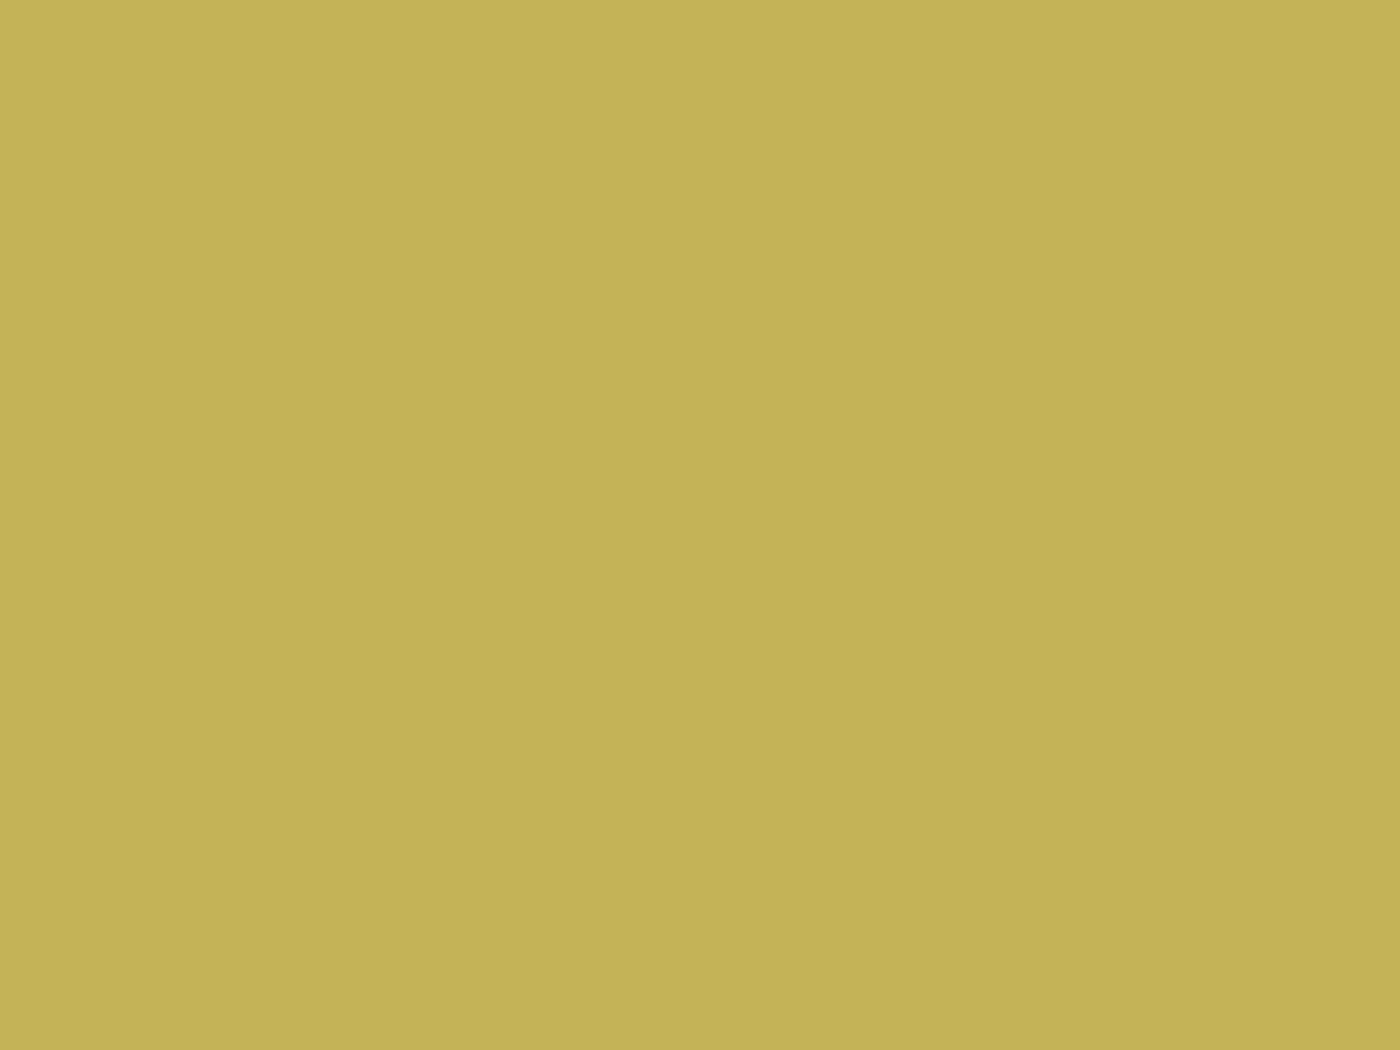 1400x1050 Vegas Gold Solid Color Background